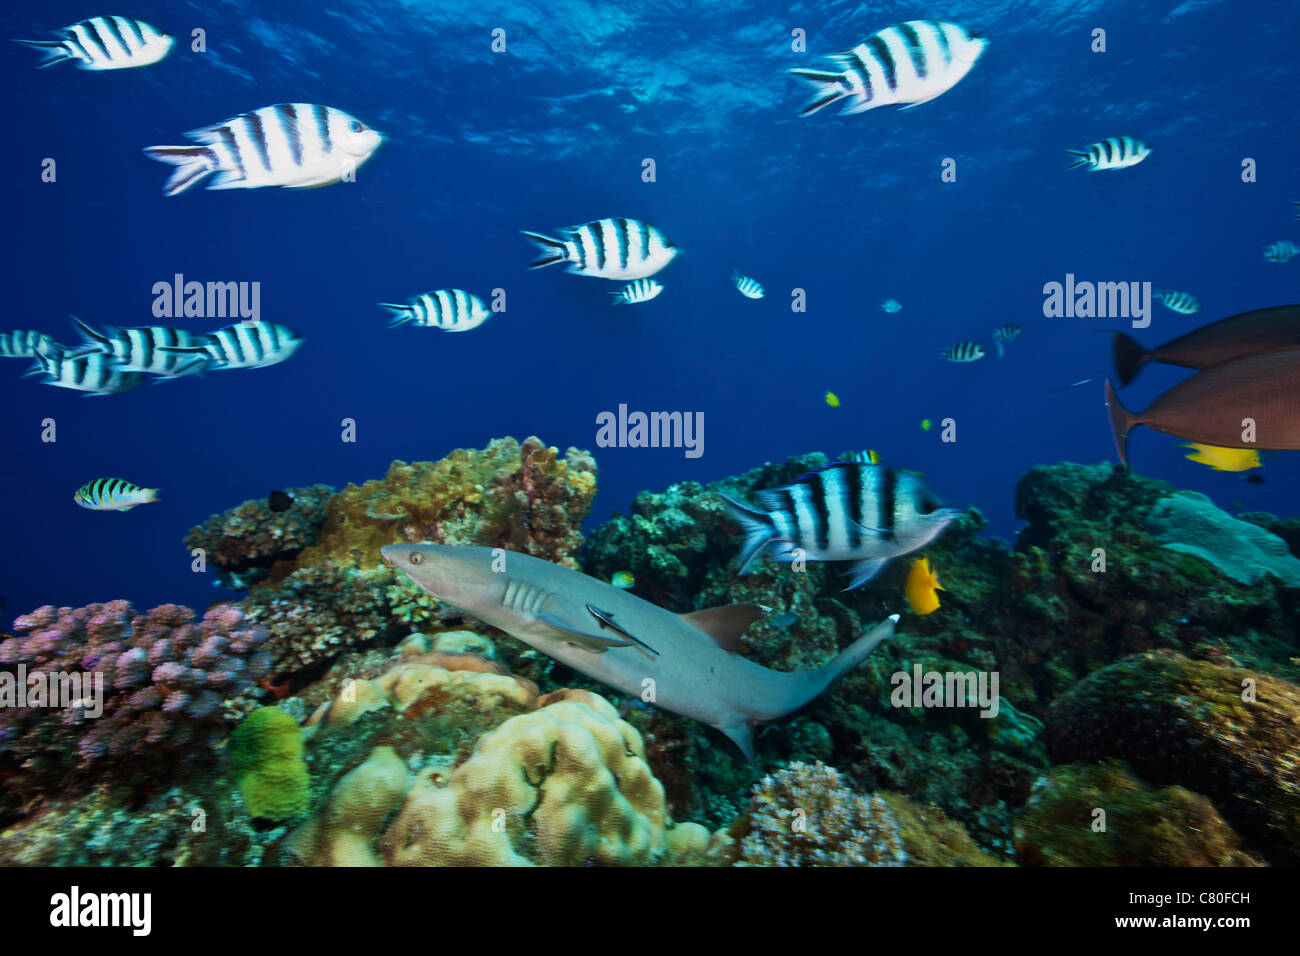 A Whitetip Reef Shark glides over the reef through a school of Scissortail Sergeant Major fish, Fiji. Stock Photo